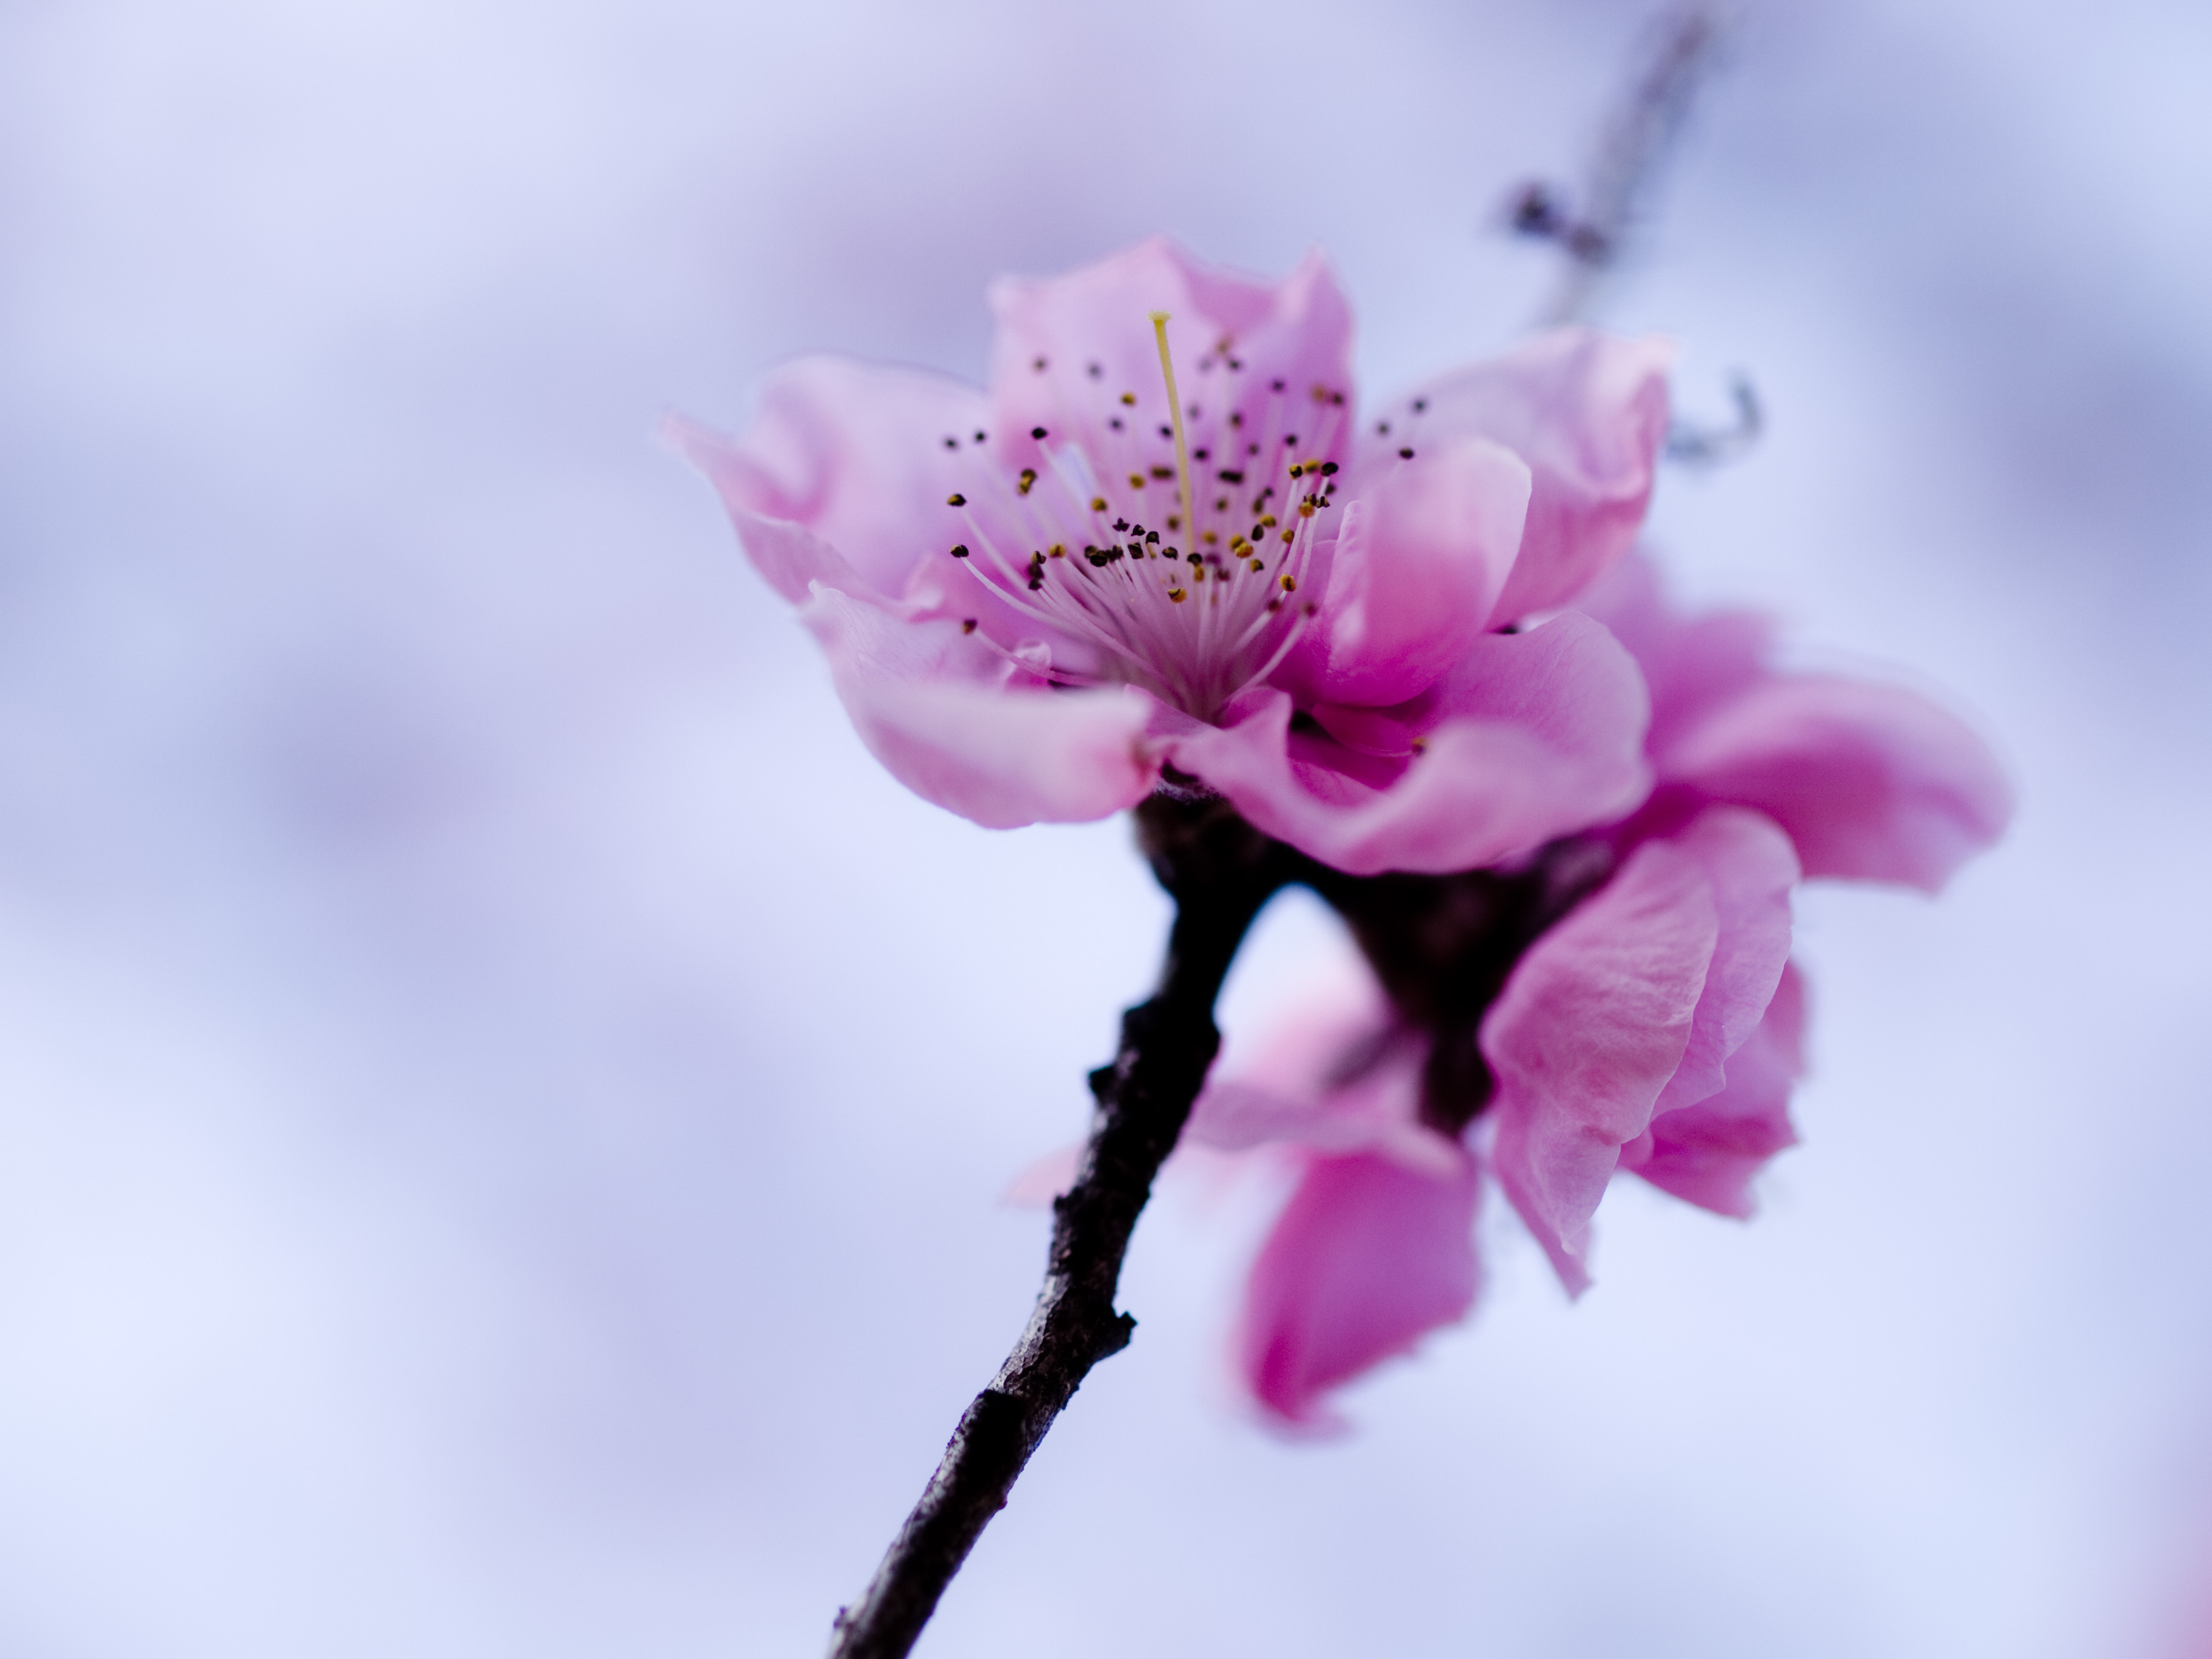 cherry blossom pictures - HD1920×1440